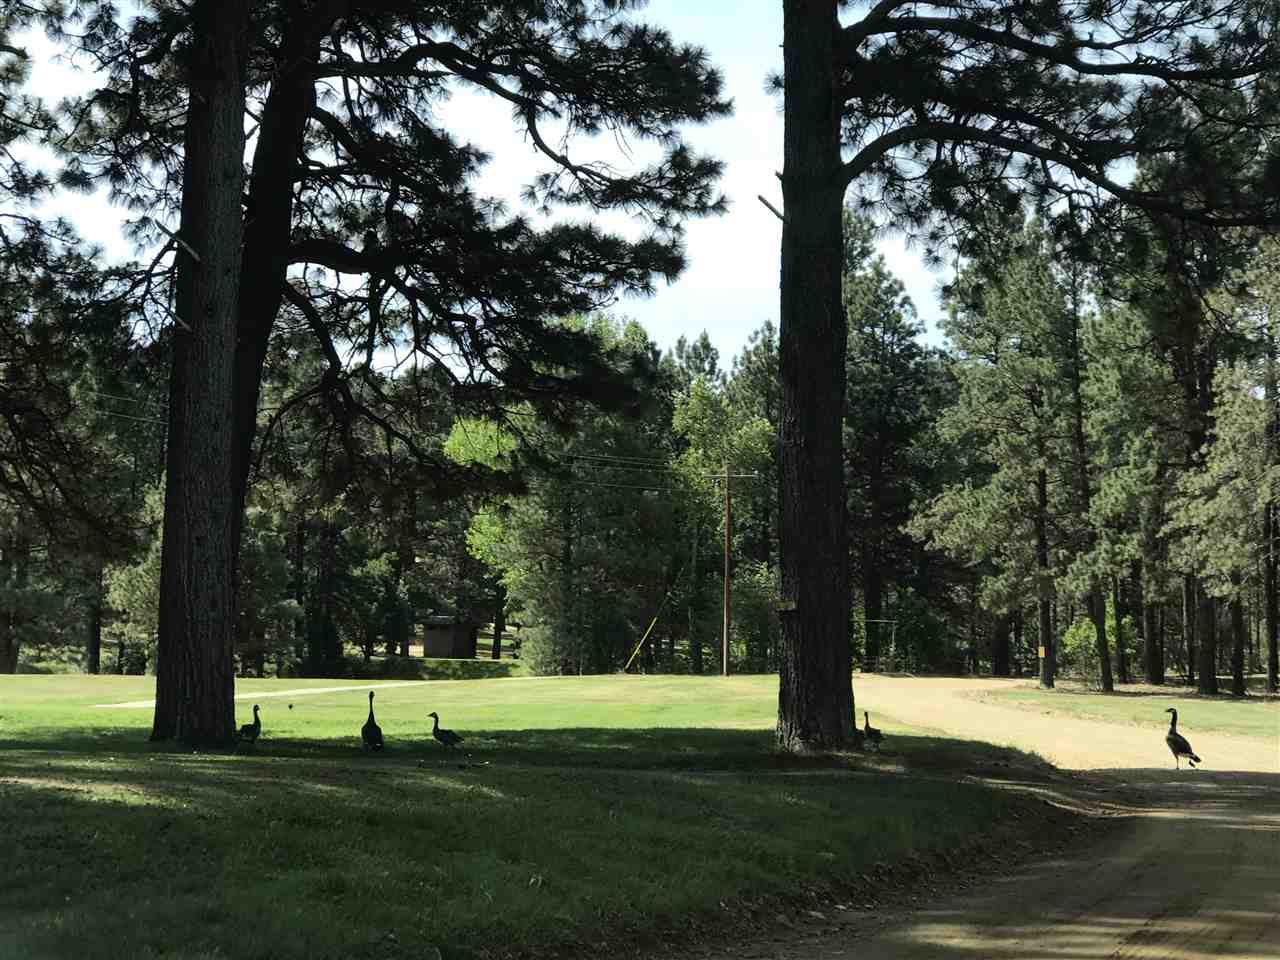 This lot is truly too good to be true! .56 of an acre located in Pendaries Village just off hole 15 of the Pendaries Golf Course for $4,500. You read right, $4,500.  This tranquil place has so much to offer if you love to enjoy the great outdoors. Pendaries is located just about a hour out of Santa Fe, and an hour out of Taos. Las Vegas New Mexico is close in proximity as well. While staying at the resort, jump on a golf cart and spend your day golfing. When you're ready for a break, relax on the Snack Bar Restaurant patio and just take in the view. The resort also has another restaurant and lodging facilities are available if your not yet ready to build. Wildlife can also been seen throughout the resort. Pendaries is hidden treasure just waiting to be explored!